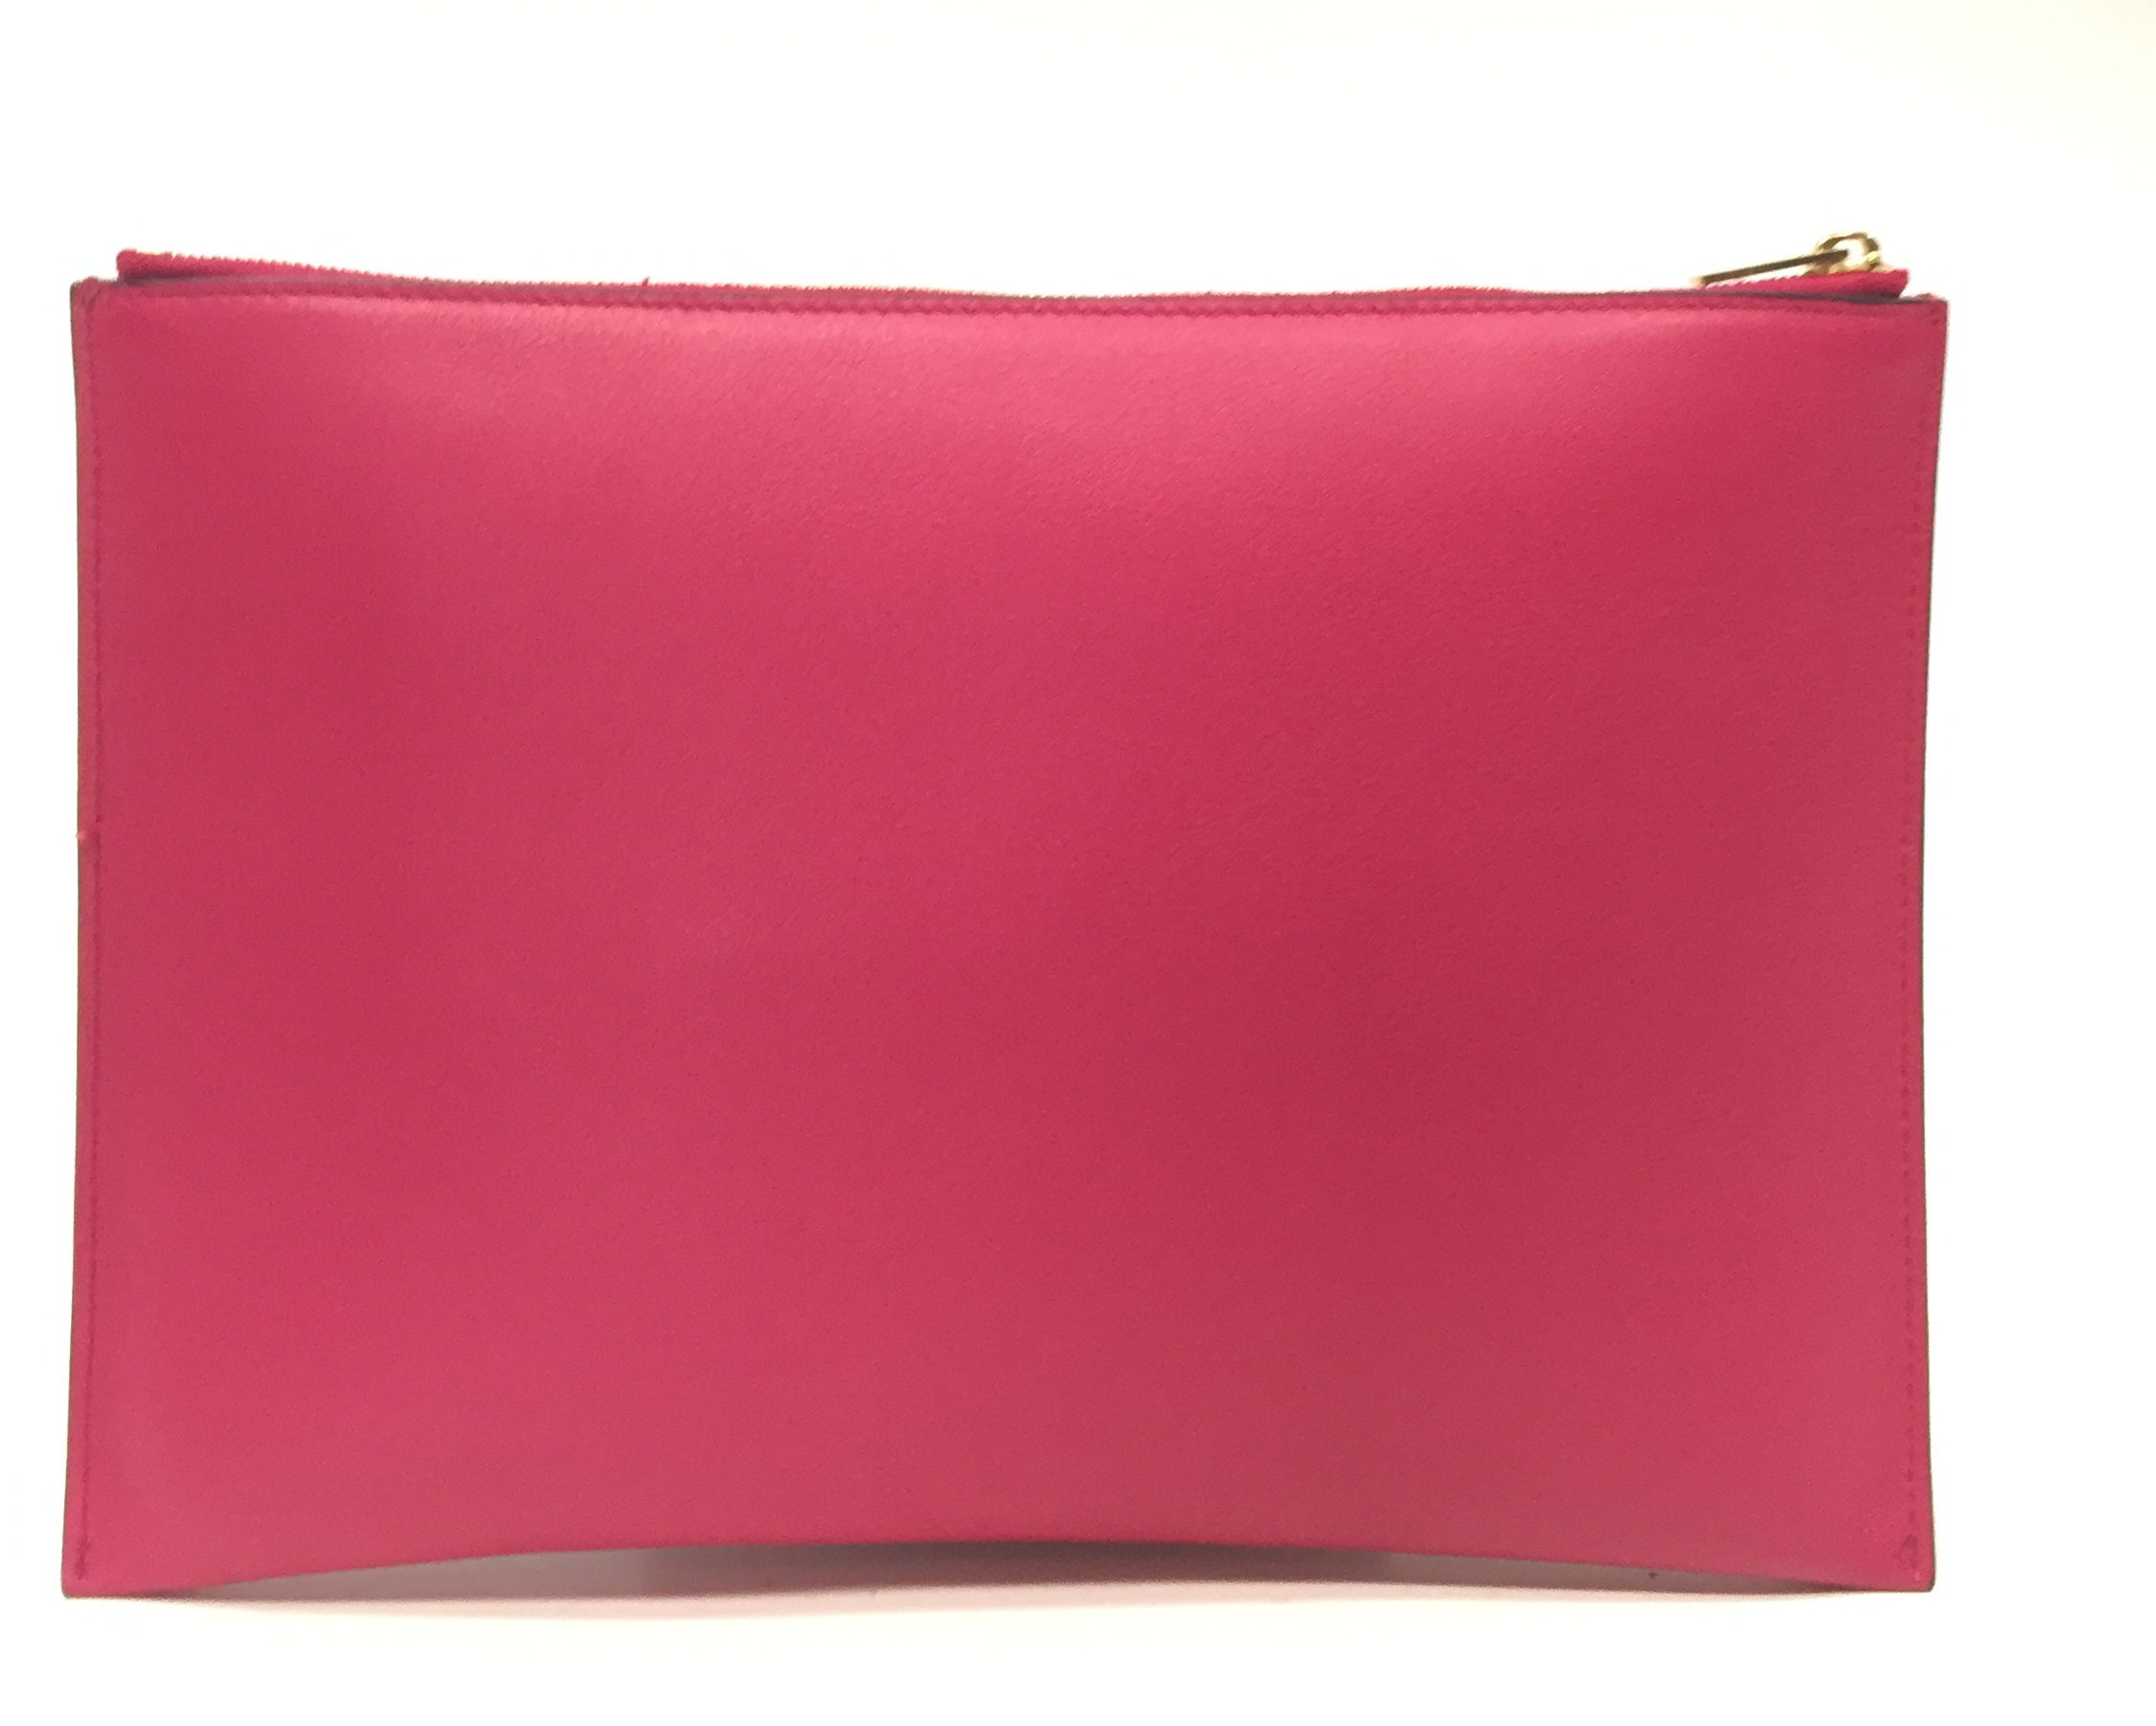 Celine Fuschia and Cream Leather Pocket Clutch Handbag | Alexis ...